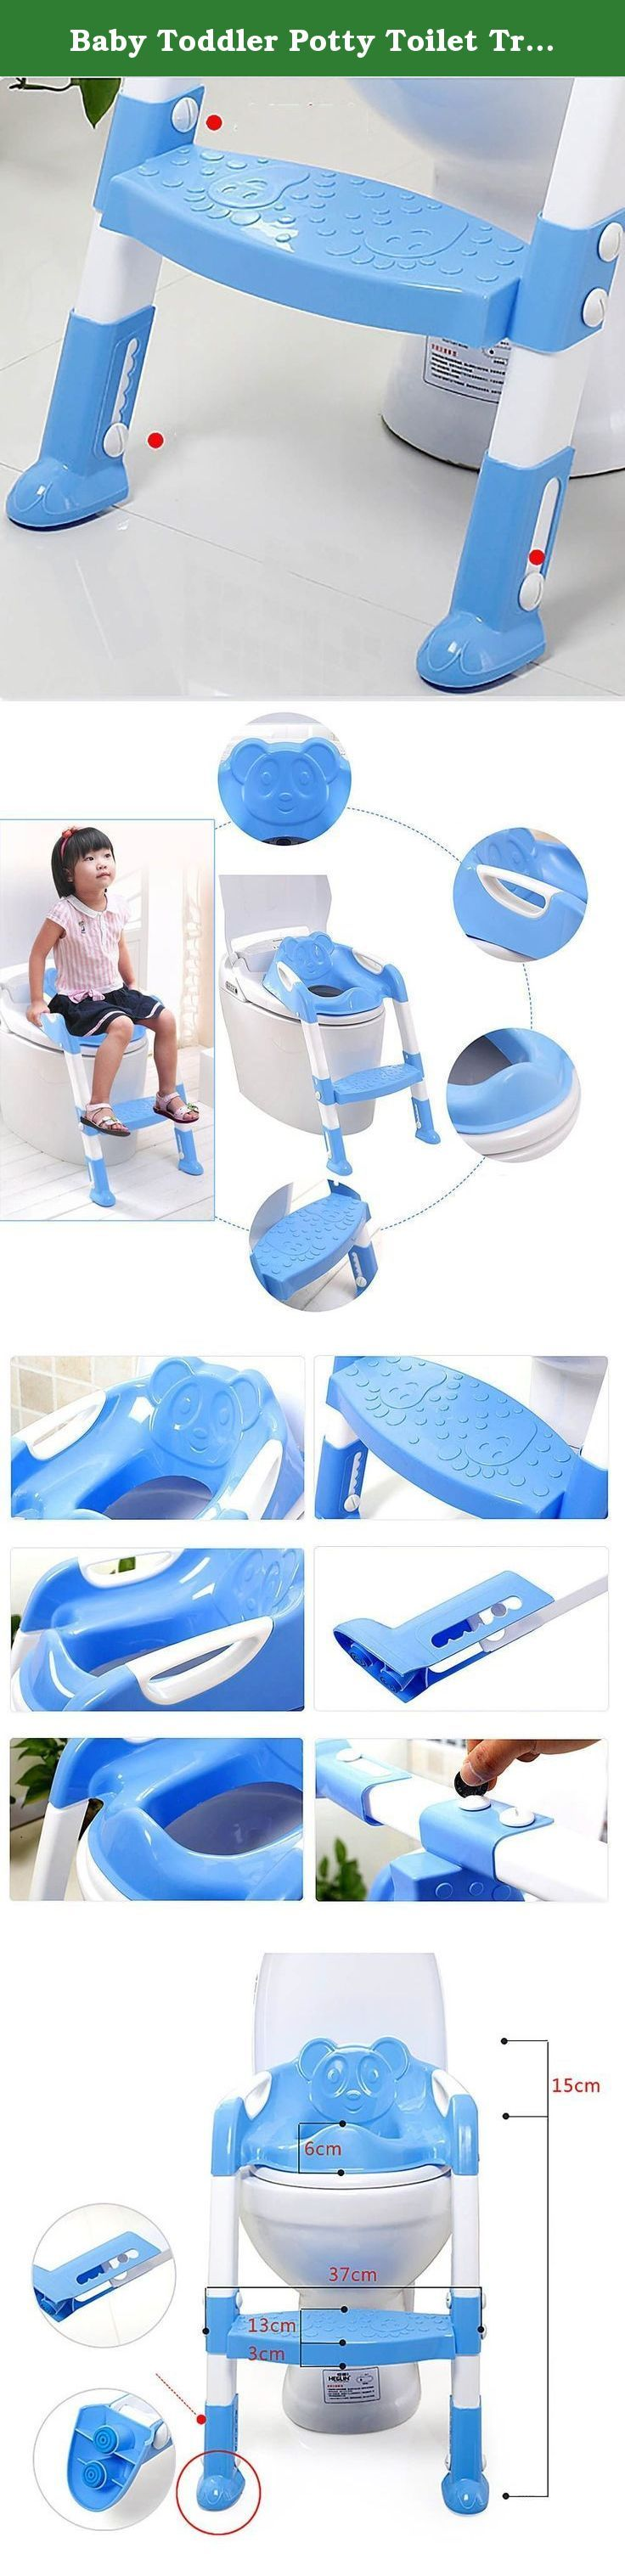 Baby Toddler Potty Toilet Trainer Safety Seat Chair Step with Adjustable Ladder Infant Toilet Training Non-slip Folding Seat - Blue. Description: 100% Brand New and High Quality. Cushion function: the choice made of safe material, with armrest, let baby more at ease and more comfortable to use. Water closet ladder function: Let childhood training baby has a good toilet habit. Anti-skid function: with a lifting of non-slip pedal, seat cushion and feet cushion are designed to be non-slip…